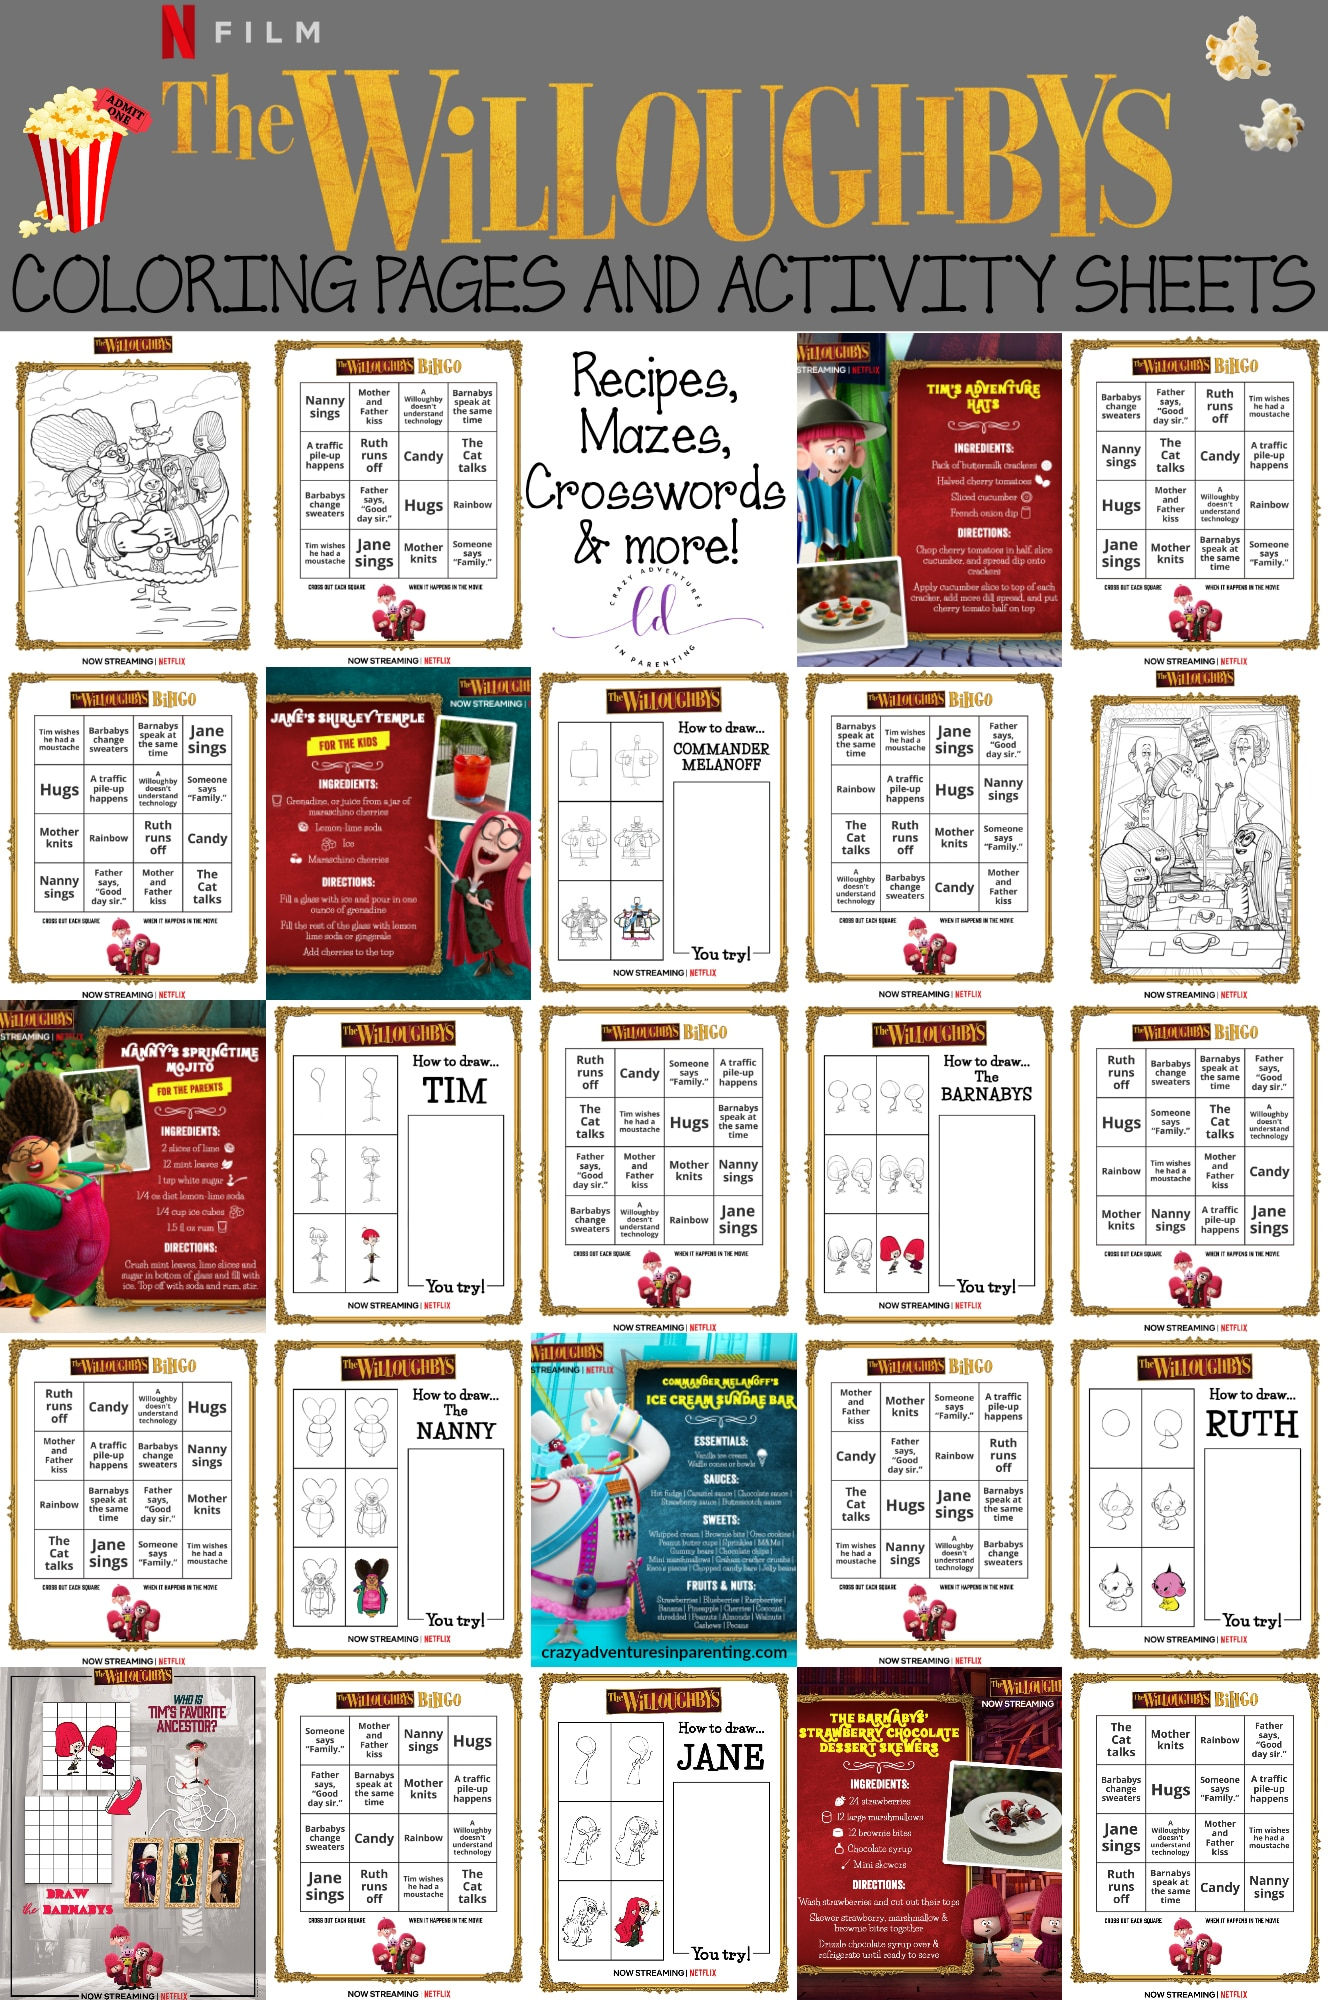 Free Printable The Willoughbys Coloring Pages and Activity Sheets